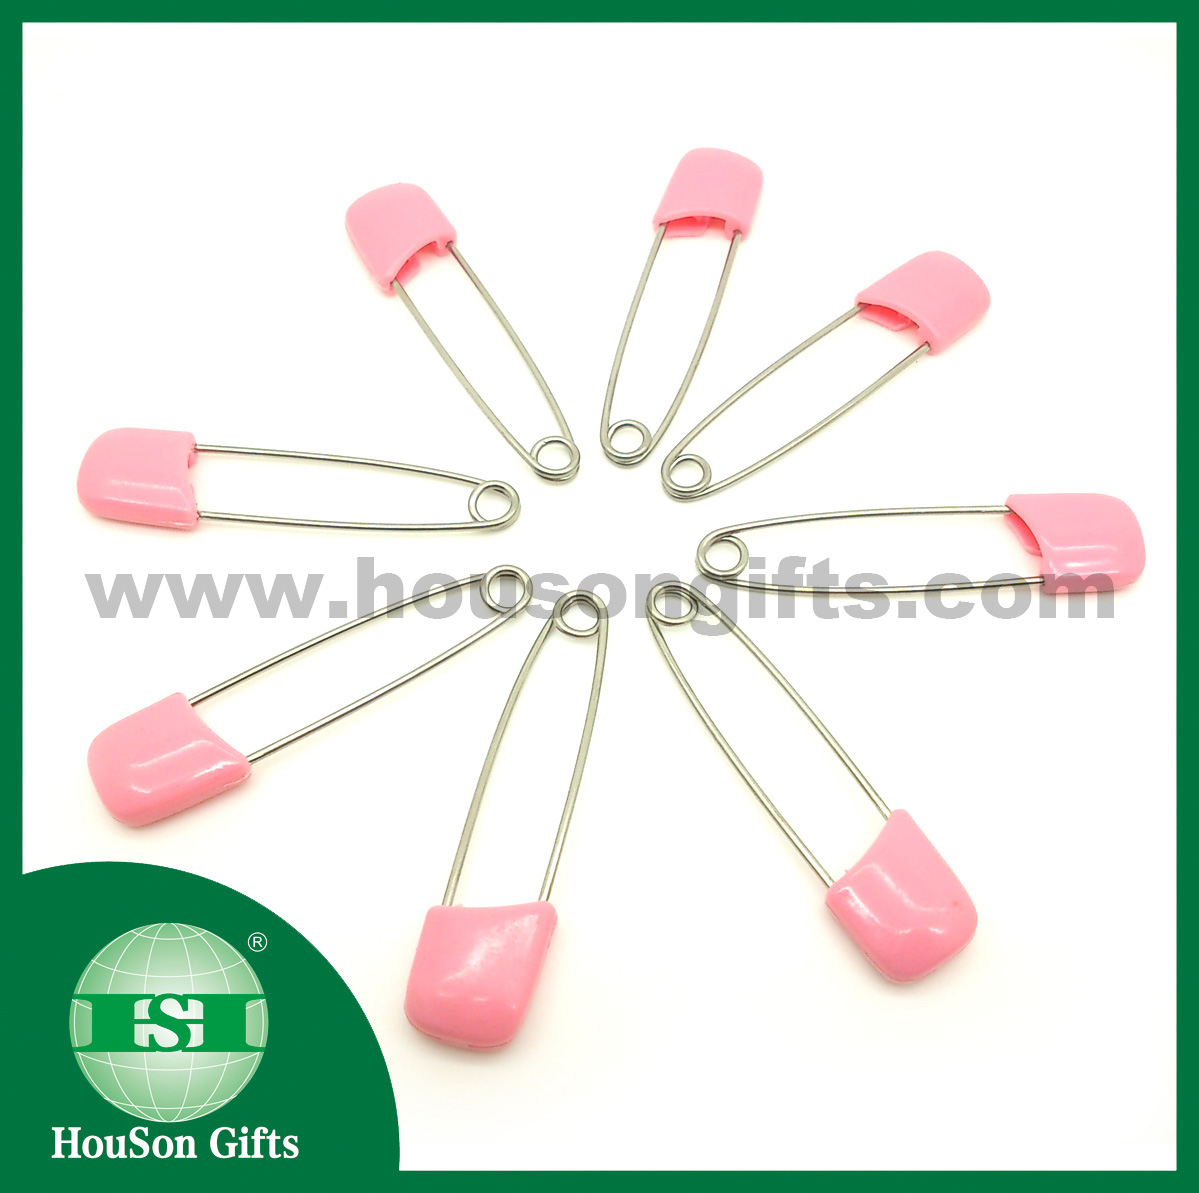 Pink stainless steel safety pins